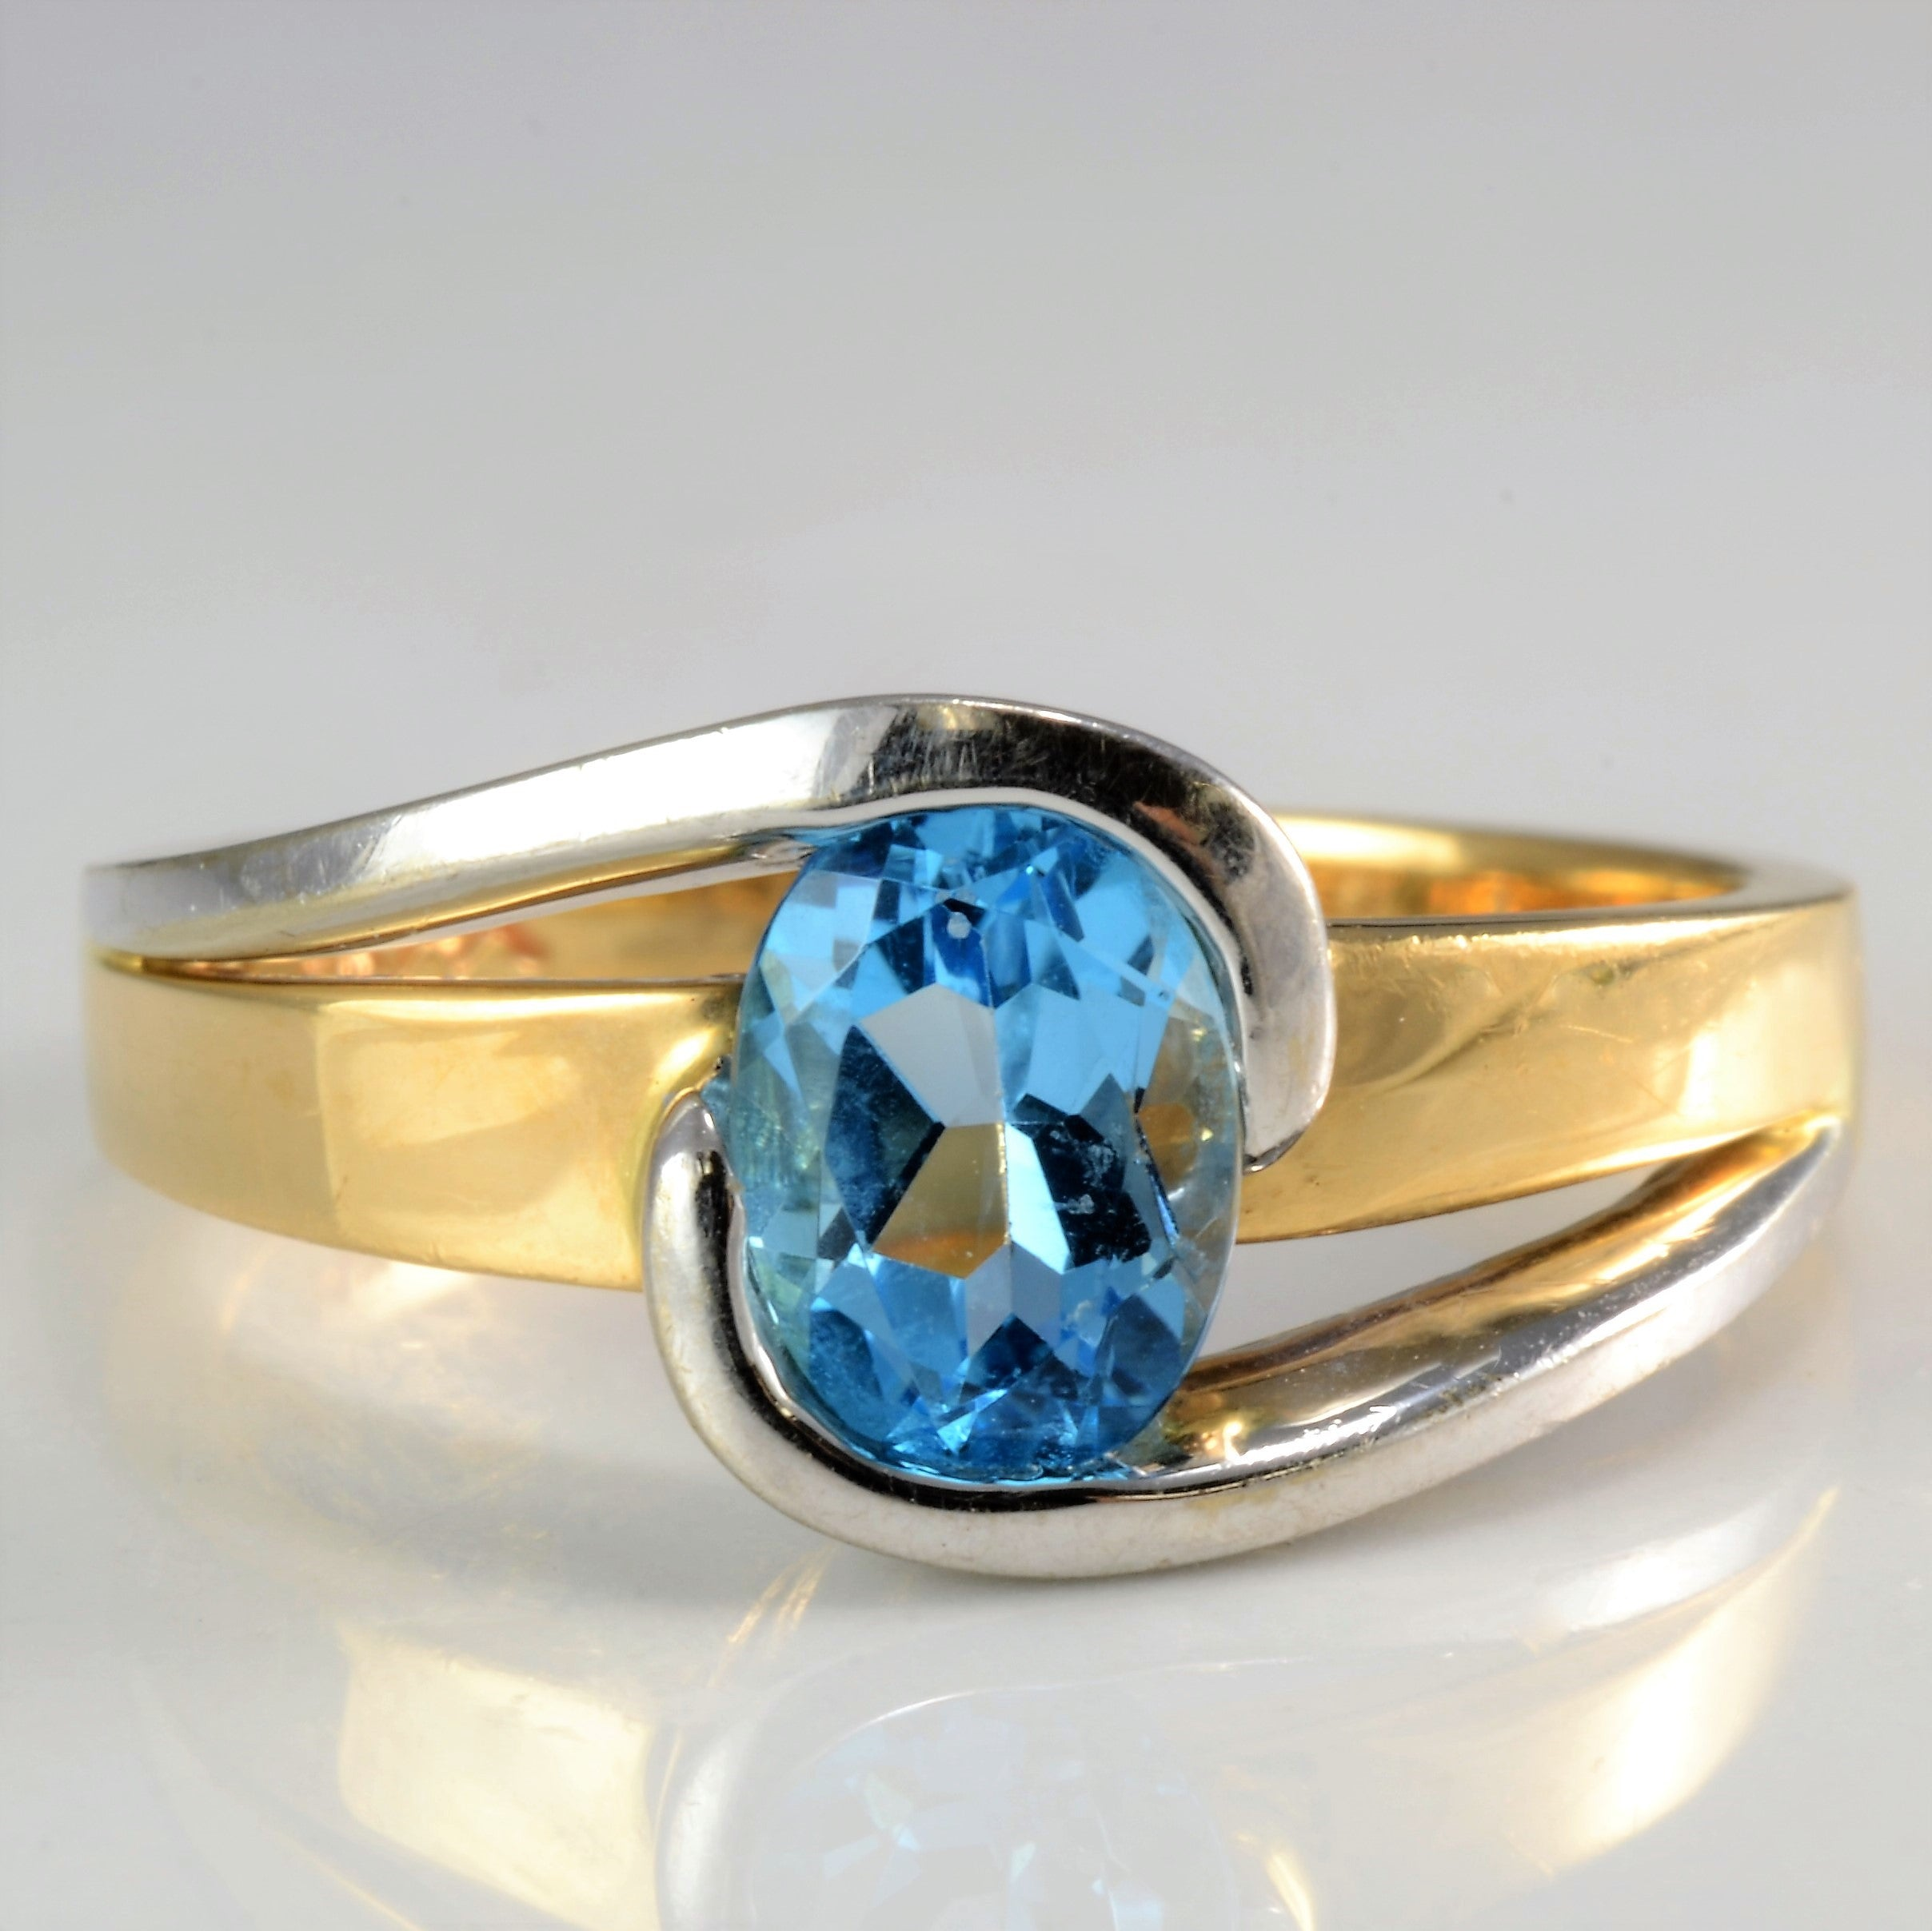 Two-Tone Bypass Solitaire Topaz Ring | SZ 6.5 |